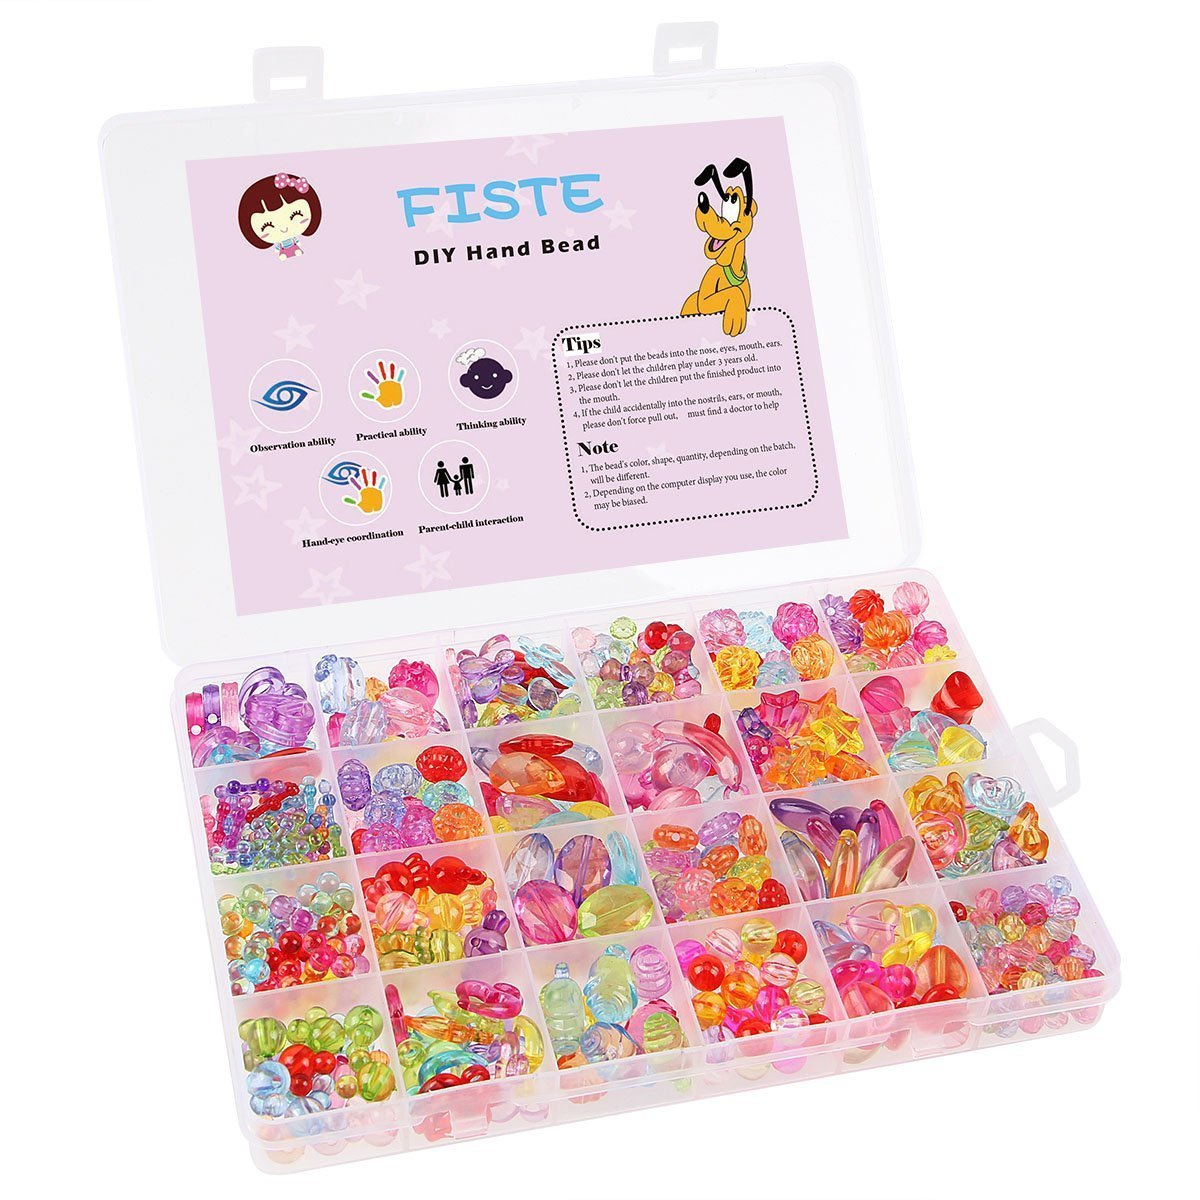 FISTE 24 Lattices Colorful Acrylic DIY Children's Hair Beaded Hand-made Hairpin Girls Toys Jewelry Wristband Maker for Children Necklace and Bracelet Great Gift